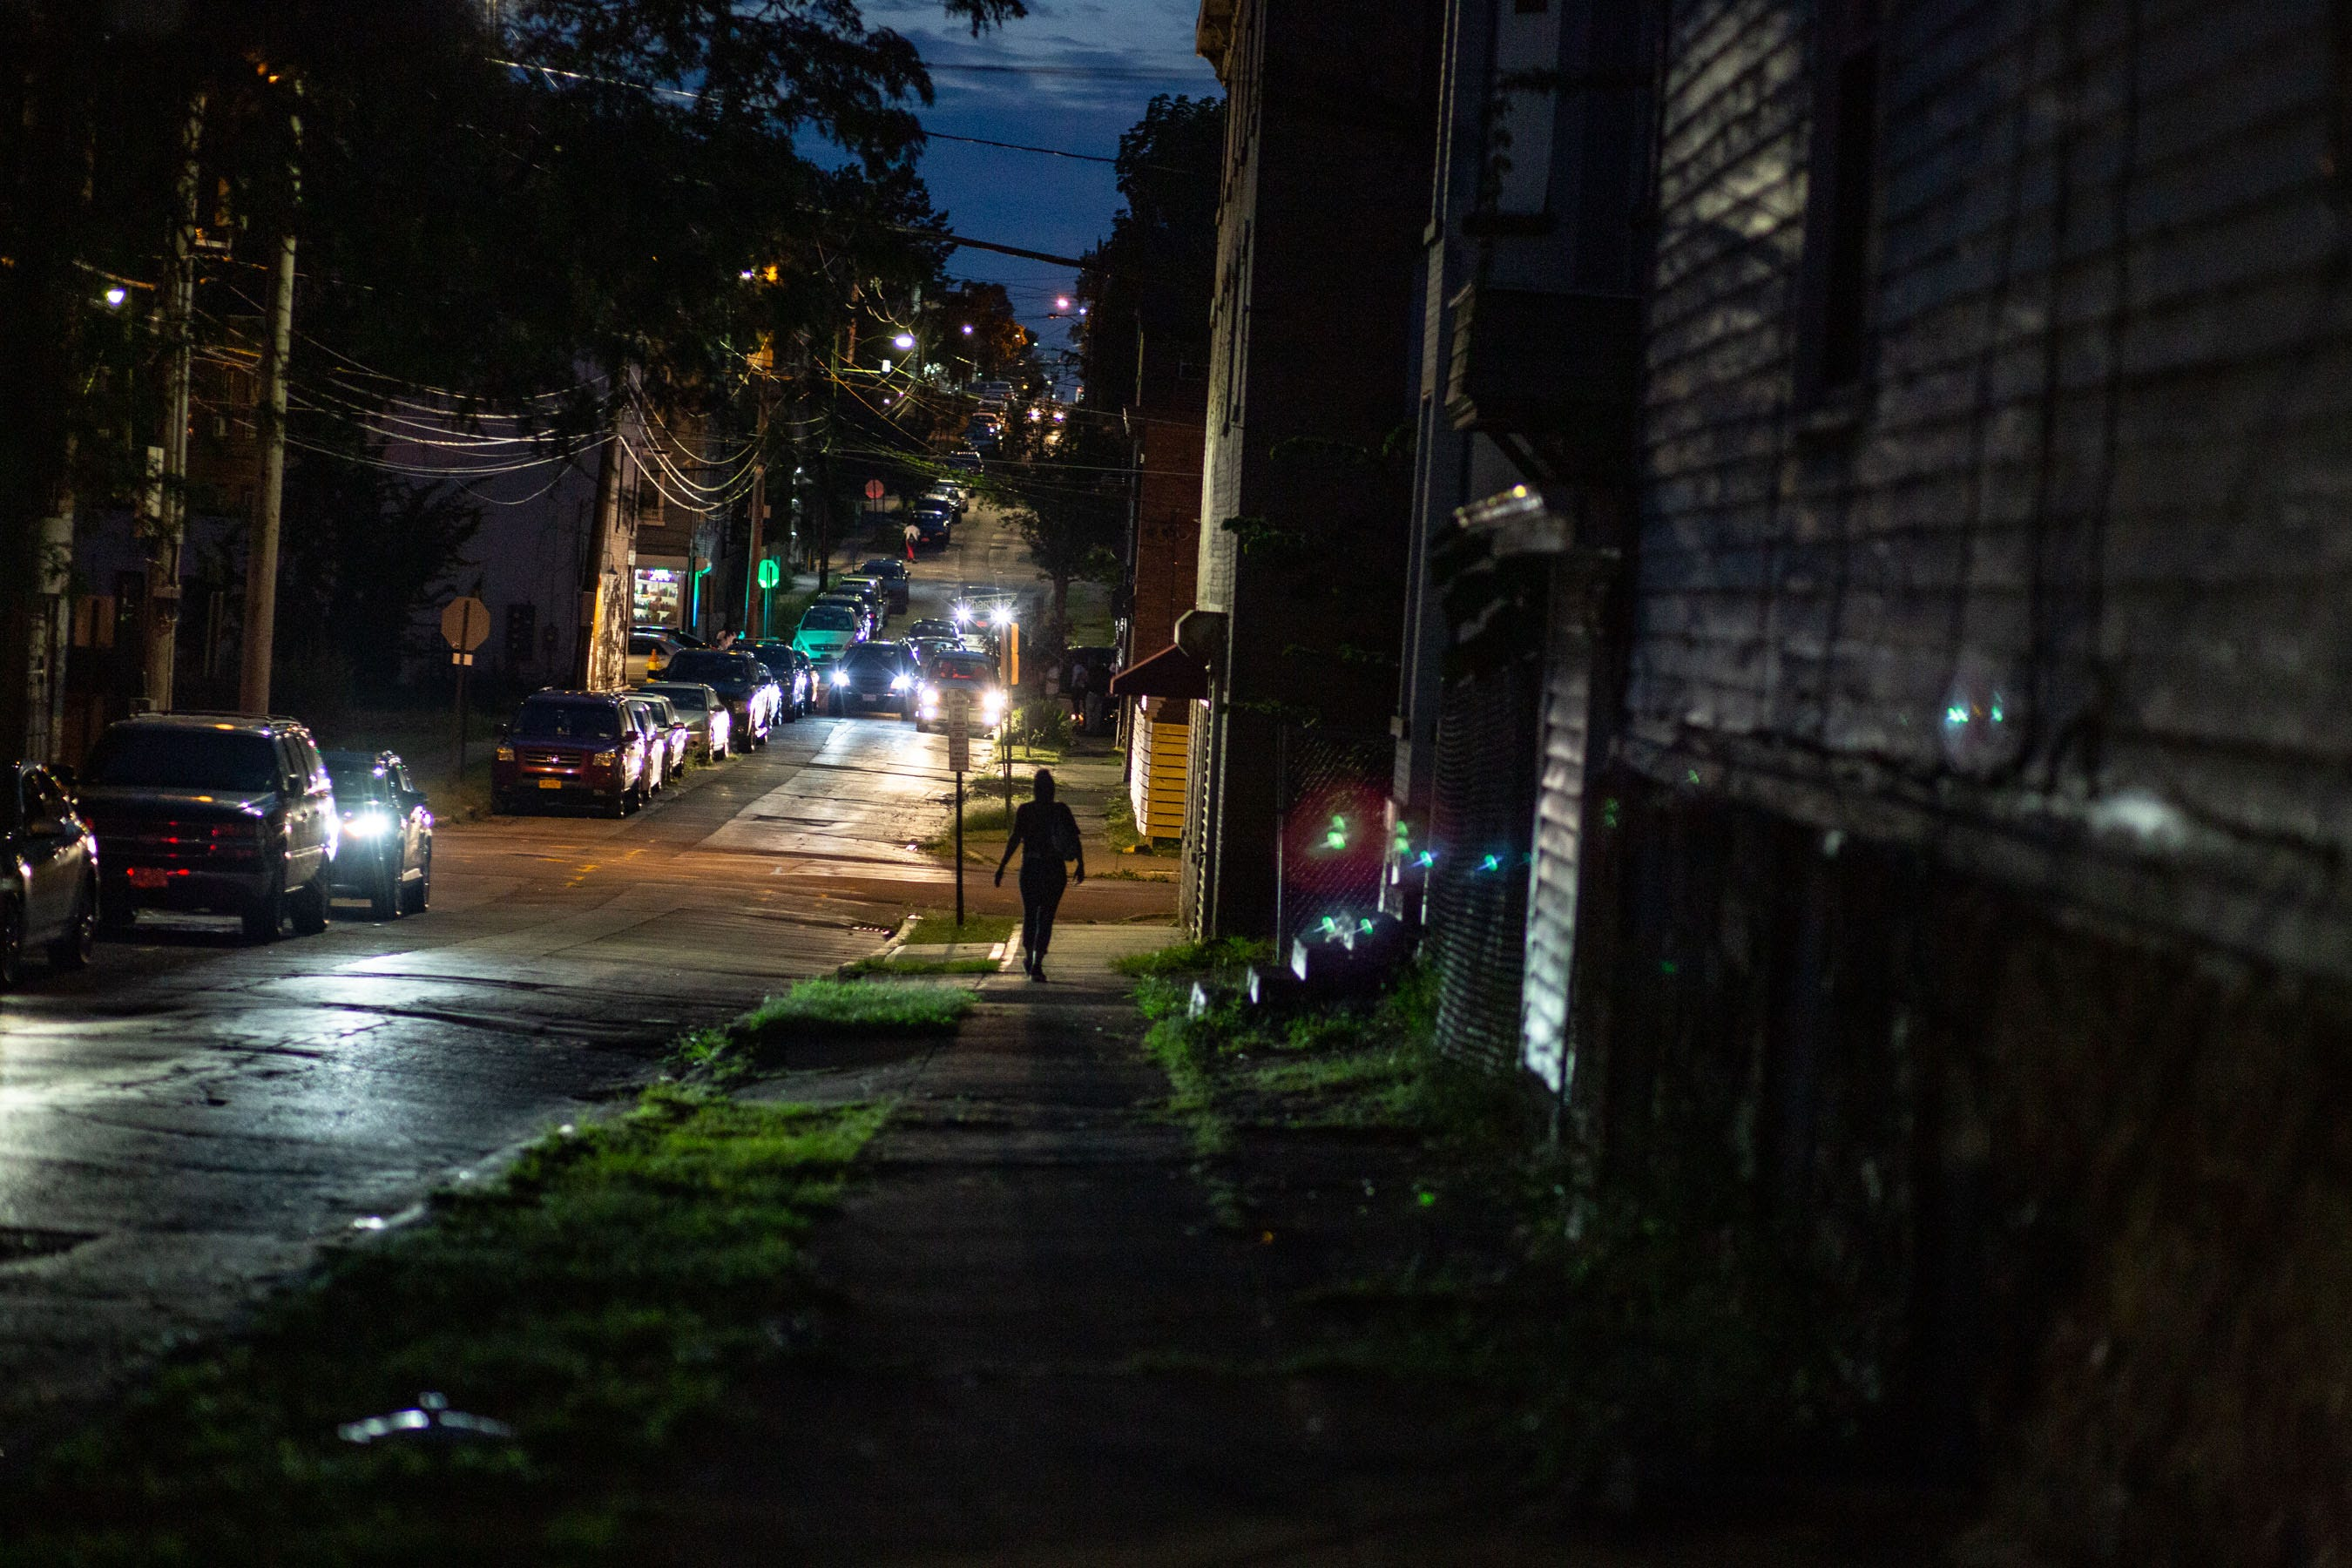 Gangs next door: 'It's becoming the norm': Decades of gang violence rooted in some Hudson Valley neighborhoods